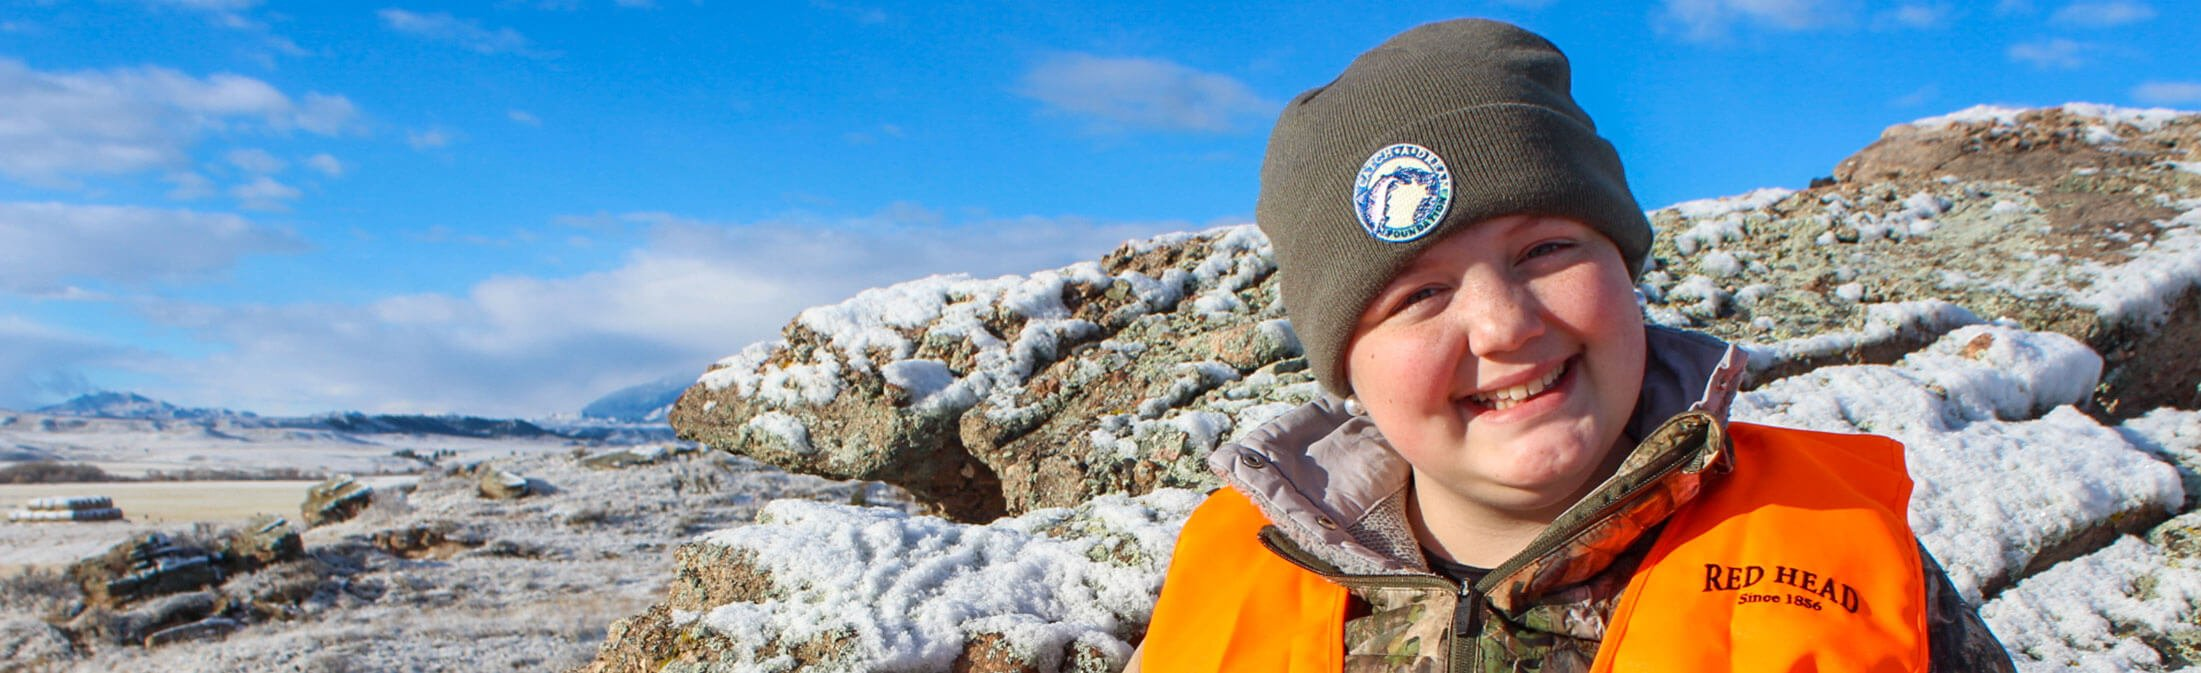 Catch-A-Dream child on elk hunting adventure